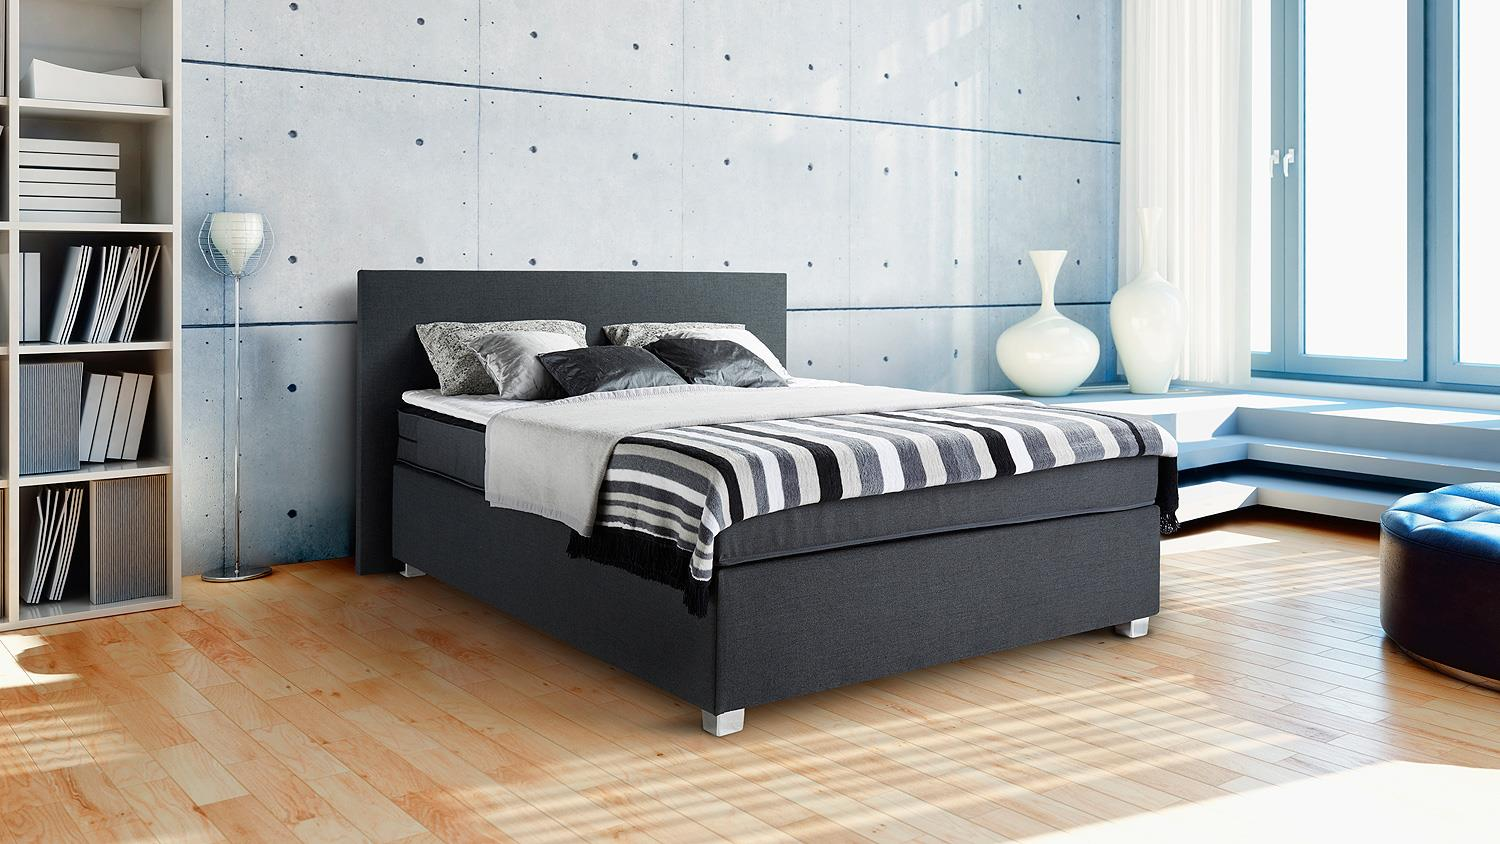 boxspringbett sybille anthrazit inkl topper 140x200 cm. Black Bedroom Furniture Sets. Home Design Ideas